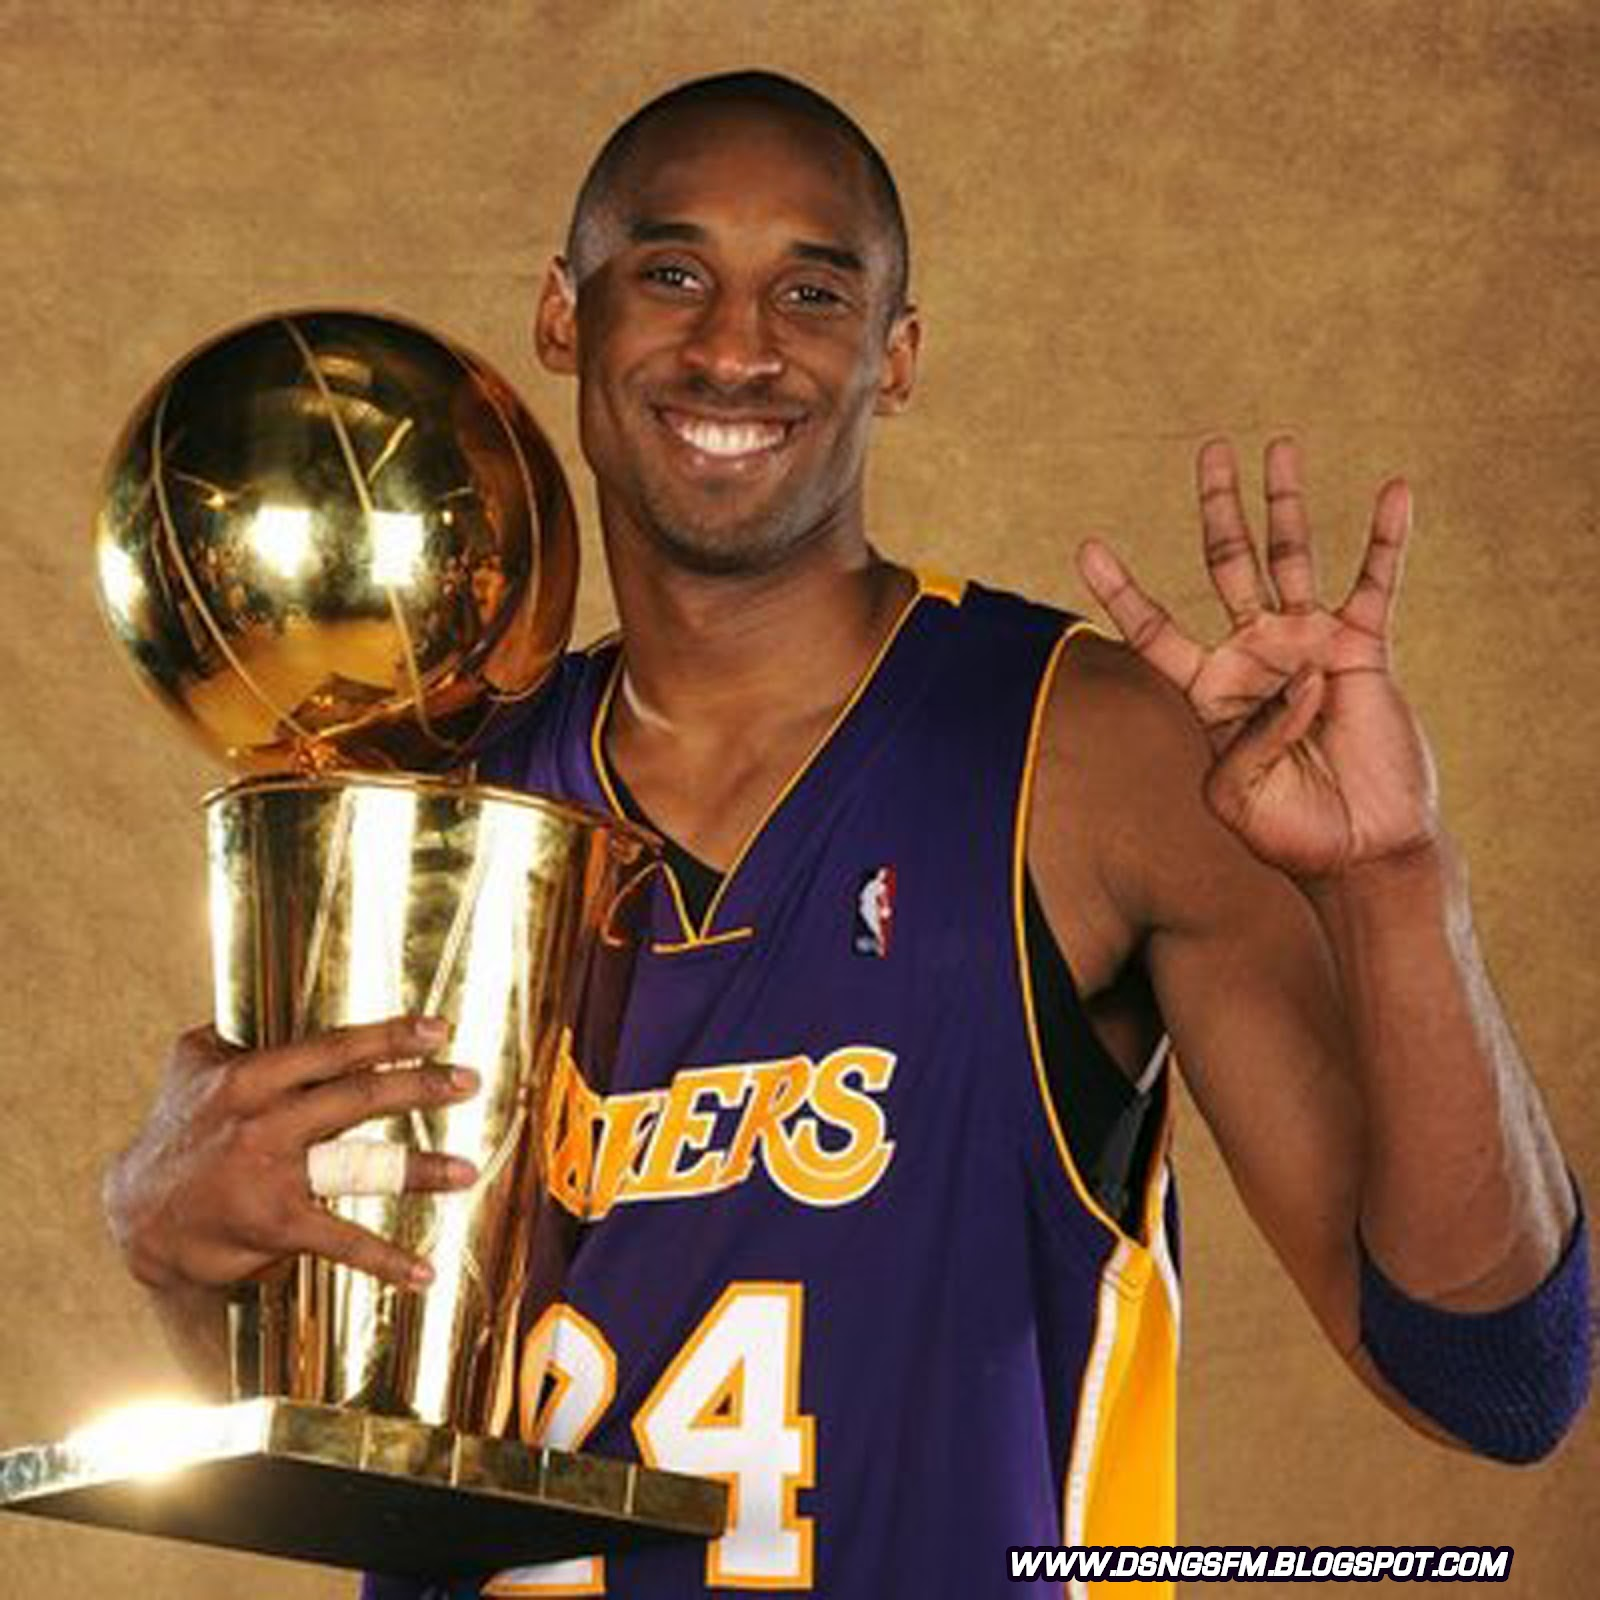 http://4.bp.blogspot.com/-i6llP30g_Oc/T_kgUWc14HI/AAAAAAAAGUA/Yr4P7LGcJrU/s1600/kobe%20bryant%204%205%20time%20nba%20champion%20championship%20trophy%202012%20olympic%20games%20dream%20team%20gold%20medal%2024%20la%20lakers%20wallpaper%20poster.jpg